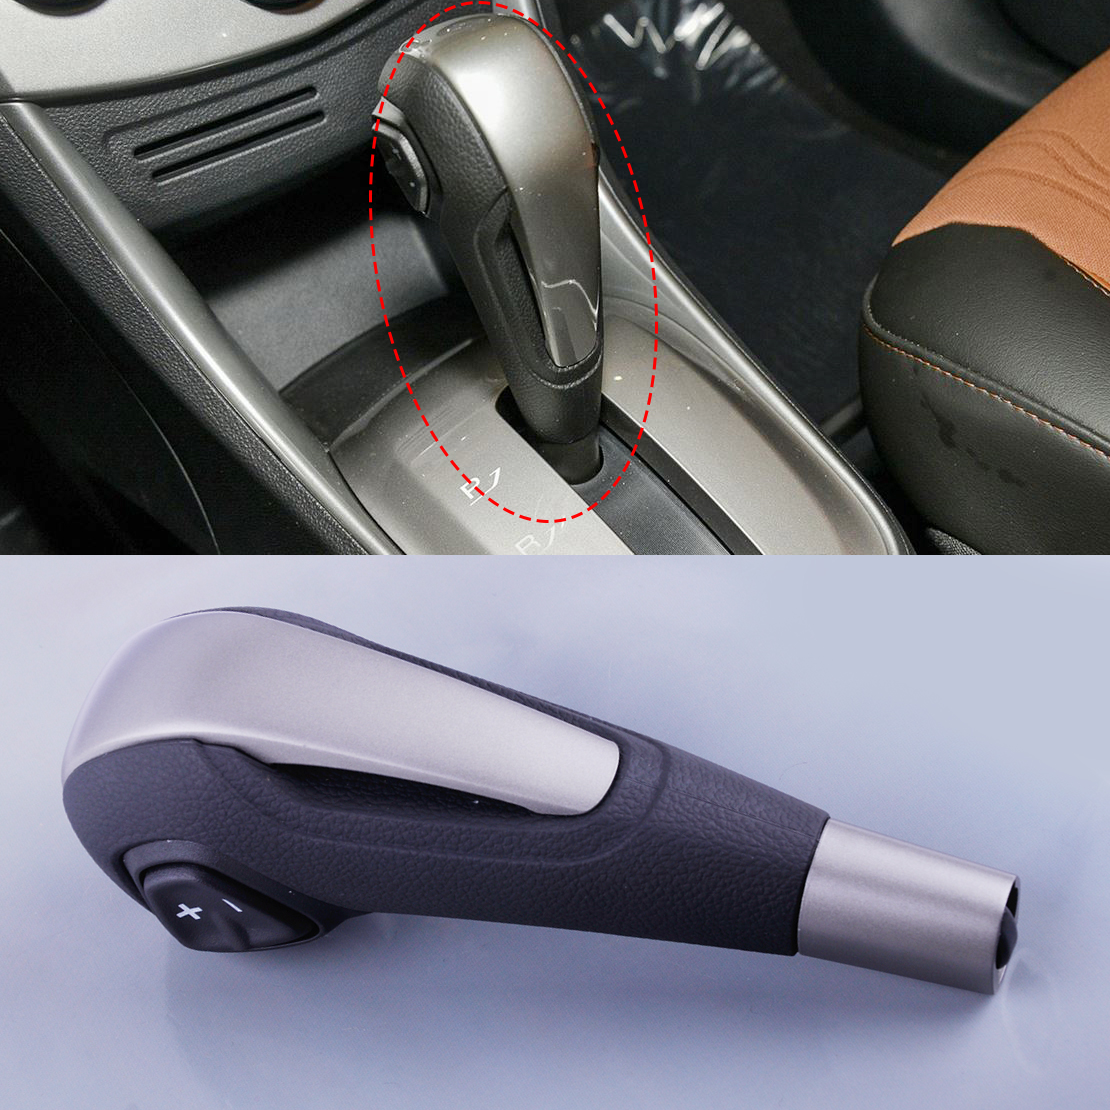 CITALL Chrome Gear Shift Knob AT Fit for Chevrolet AVEO Equinox Sonic Traverse 2277550 зубная электрощетка waterpik at 50 nano sonic